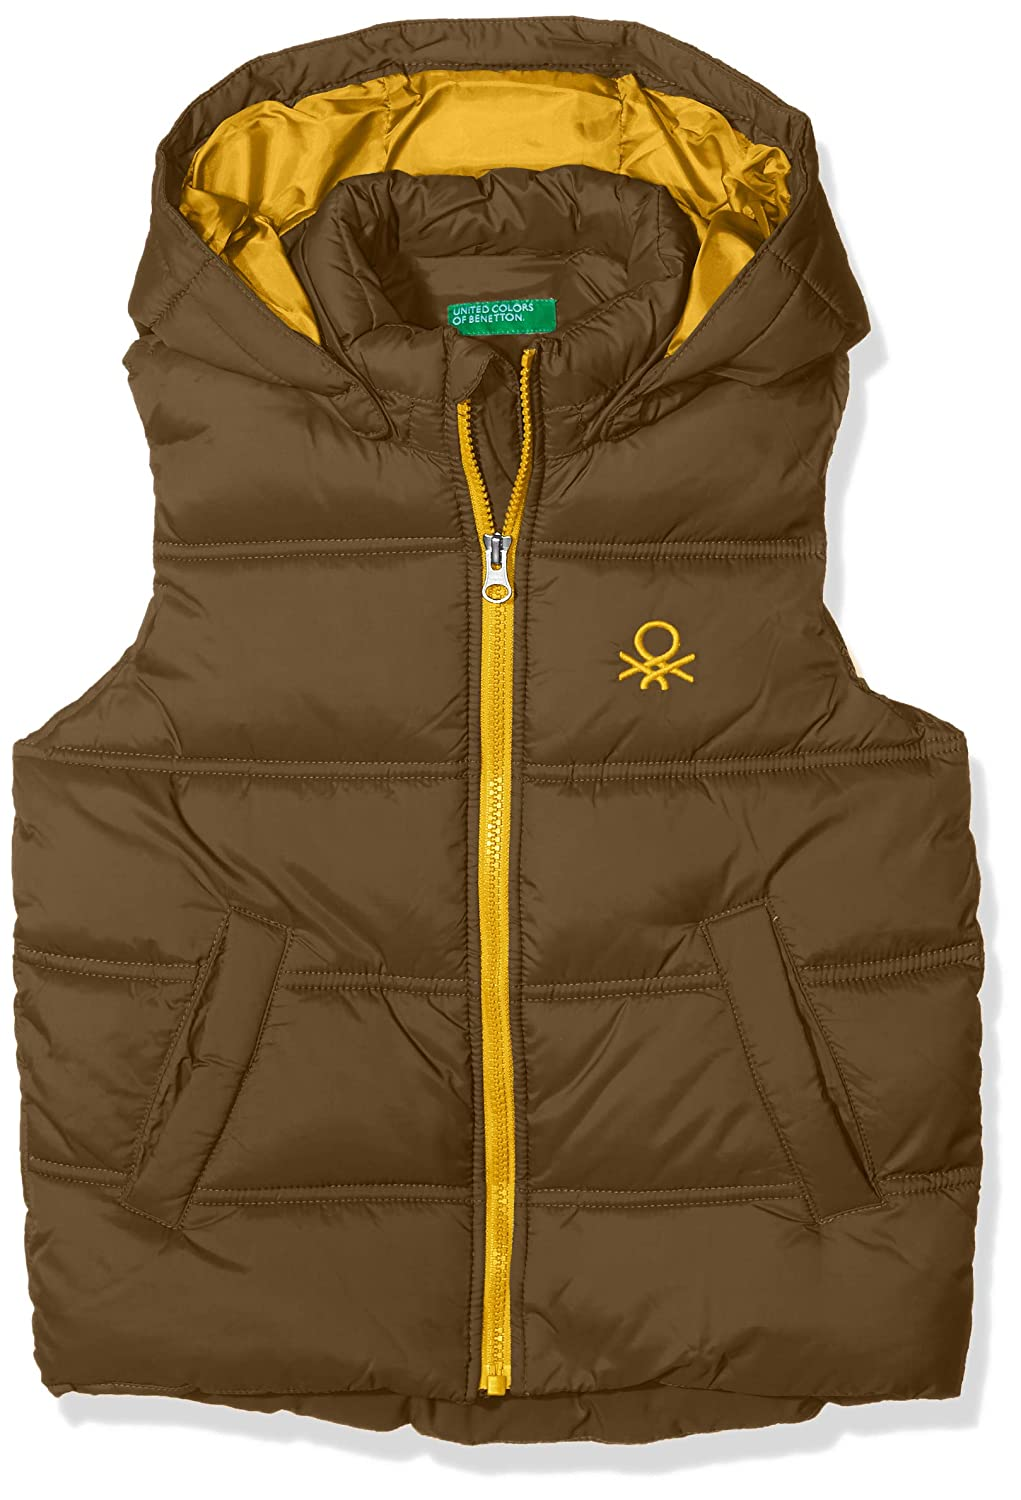 United Colors of Benetton Waistcoat, Gilet Bambino